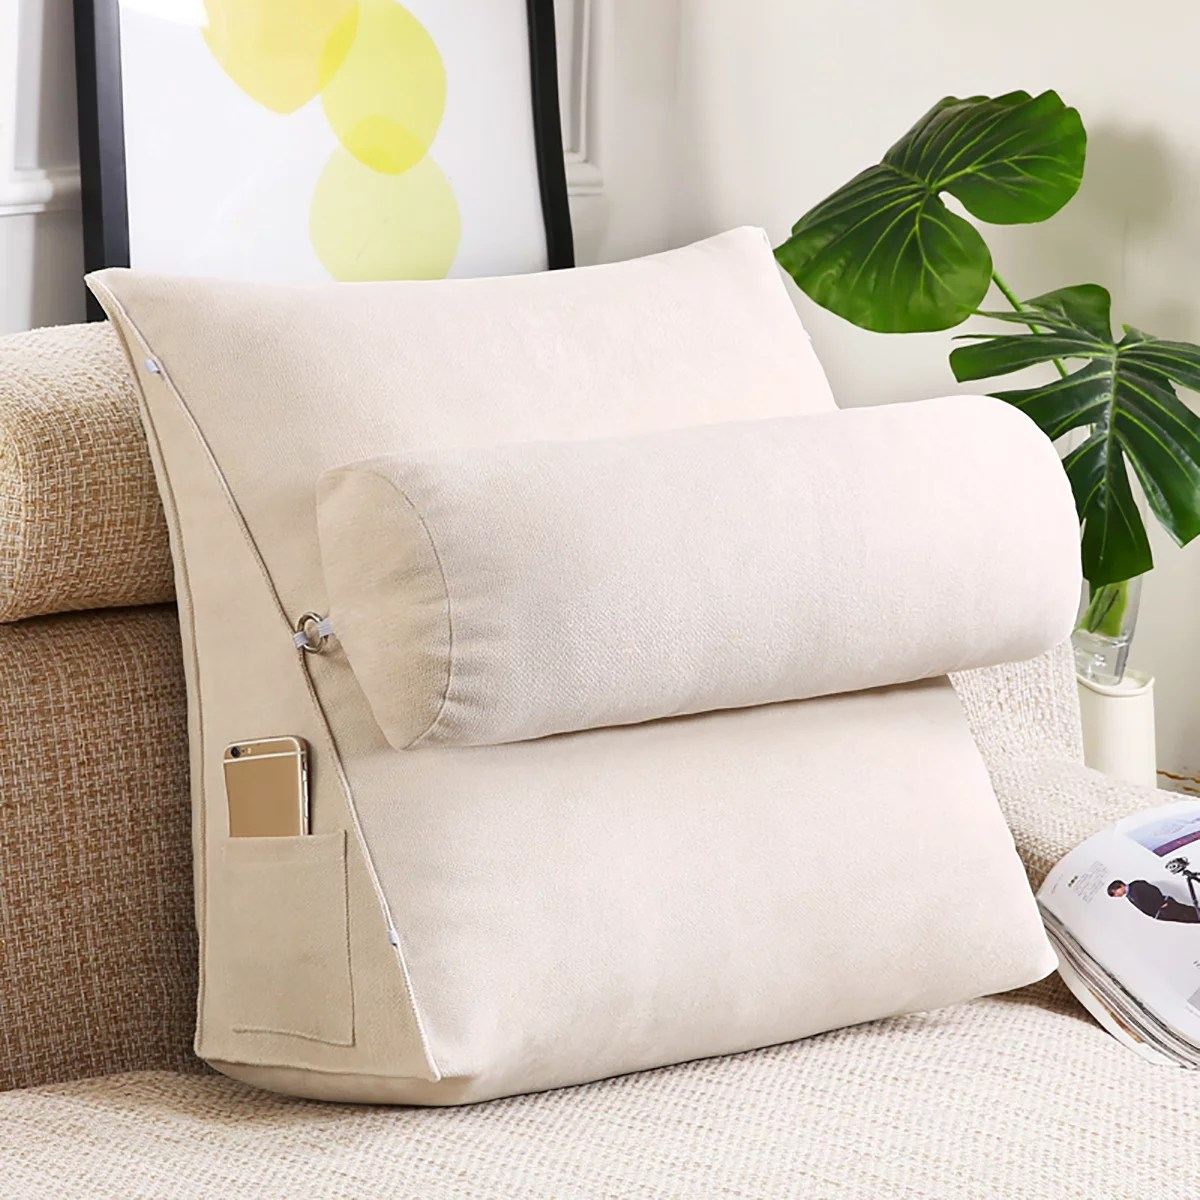 sofa bed rest reading pillow back support pillow bedrest pillows with 3 heights adjustable neck roll for reading watching tv in bed floor or sofa